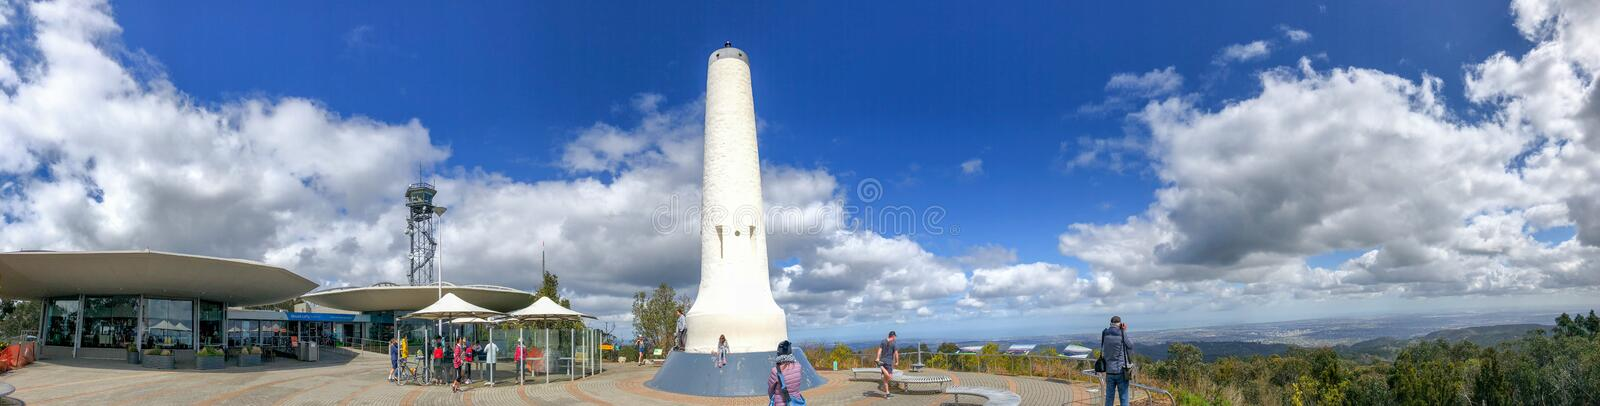 ADELAIDE, AUSTRALIA - SEPTEMBER 16, 2018: Mt Lofty terrace with tourists, panoramic view. This is a famous tourist attraction in. Adelaide royalty free stock image